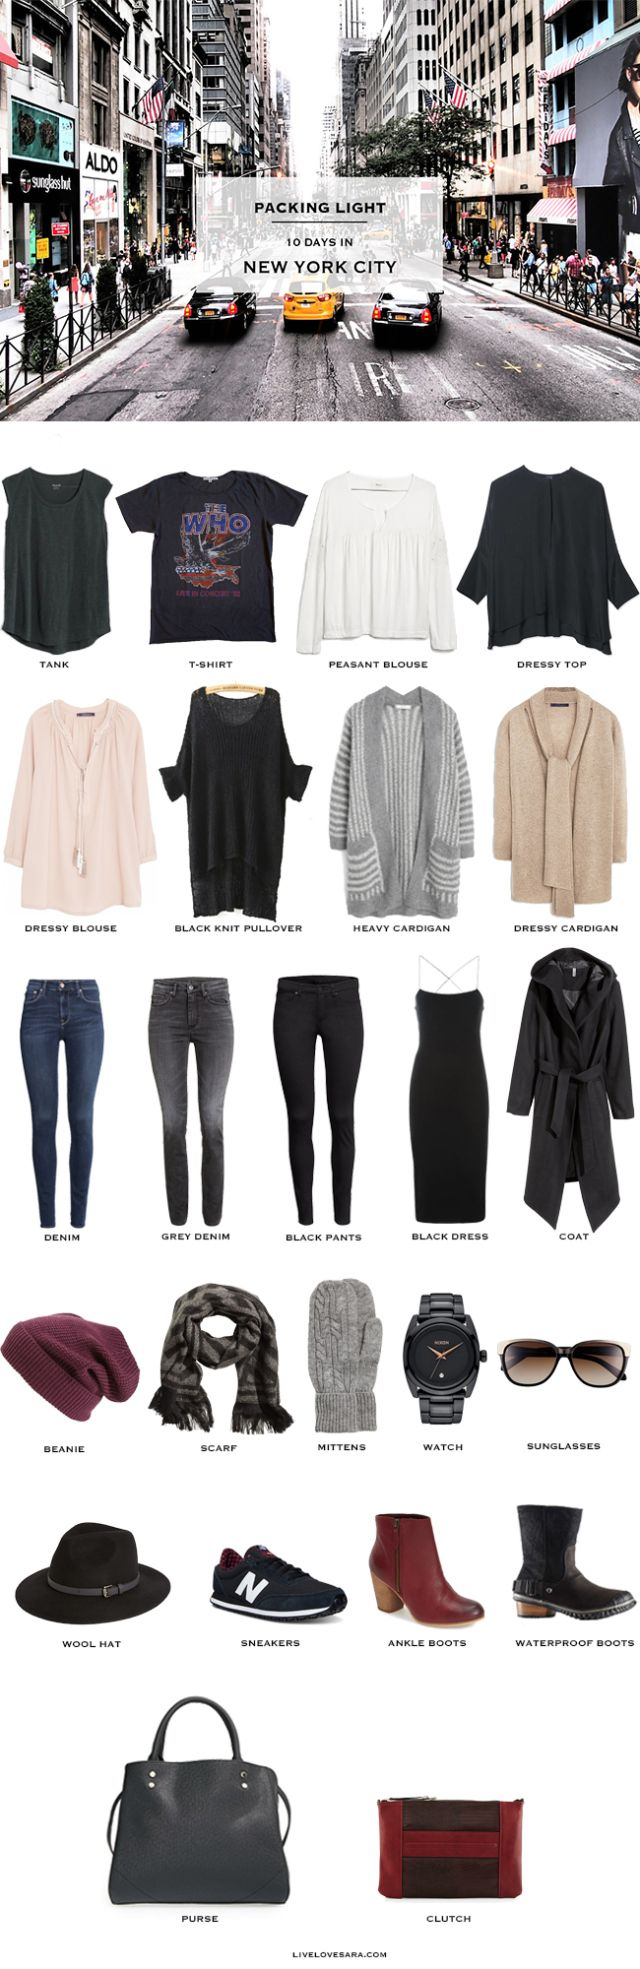 What to Pack for New York City in the Winter. Packing Light List. #packinglist #packinglight #travellight #traveltips